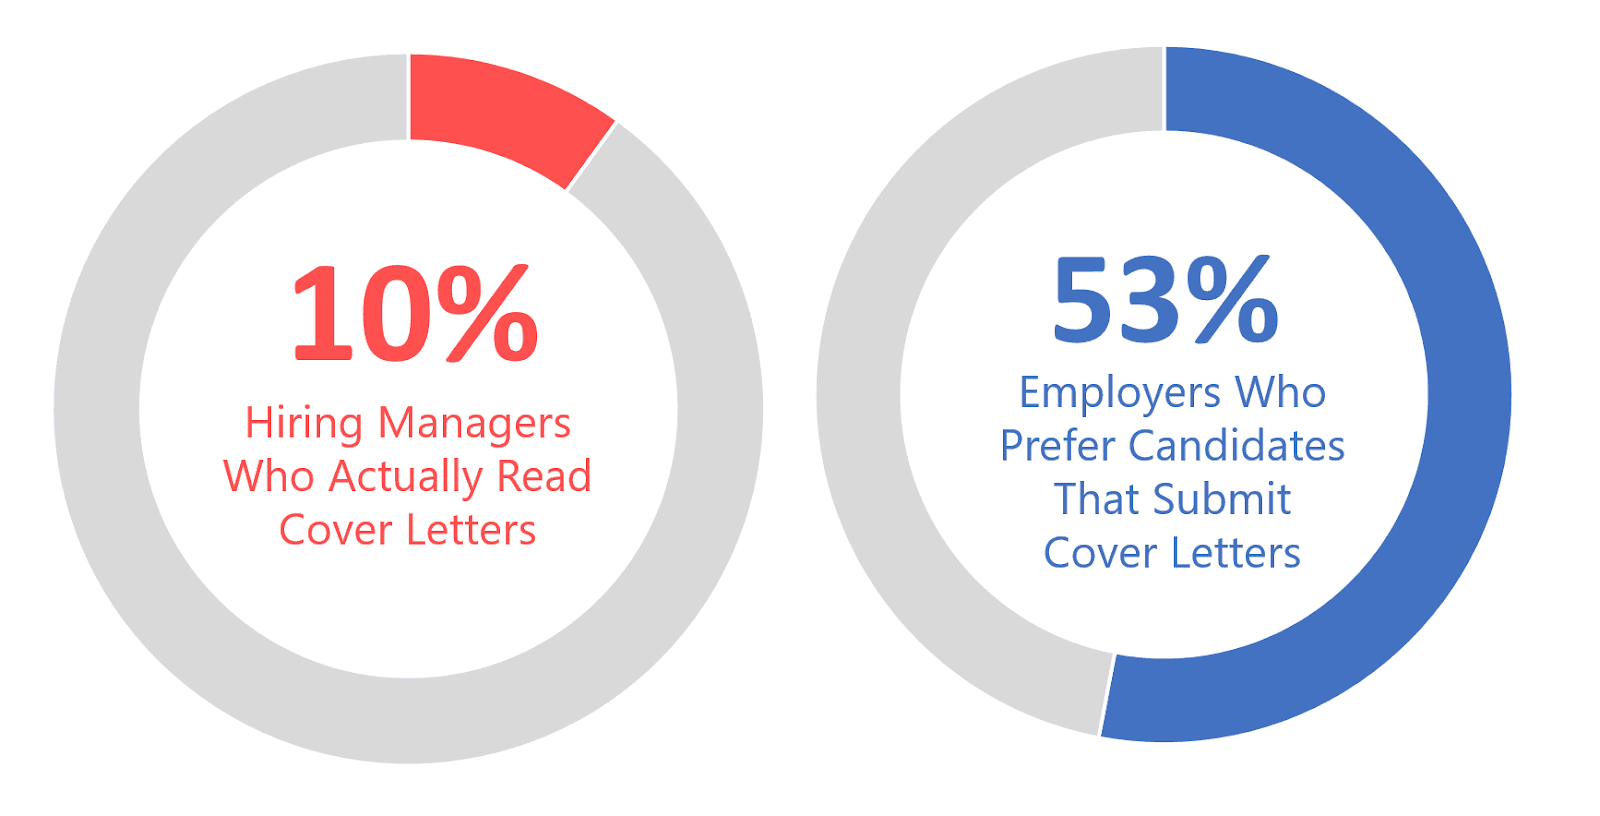 Cover Letter Engagement Statistics - Cultivated Culture